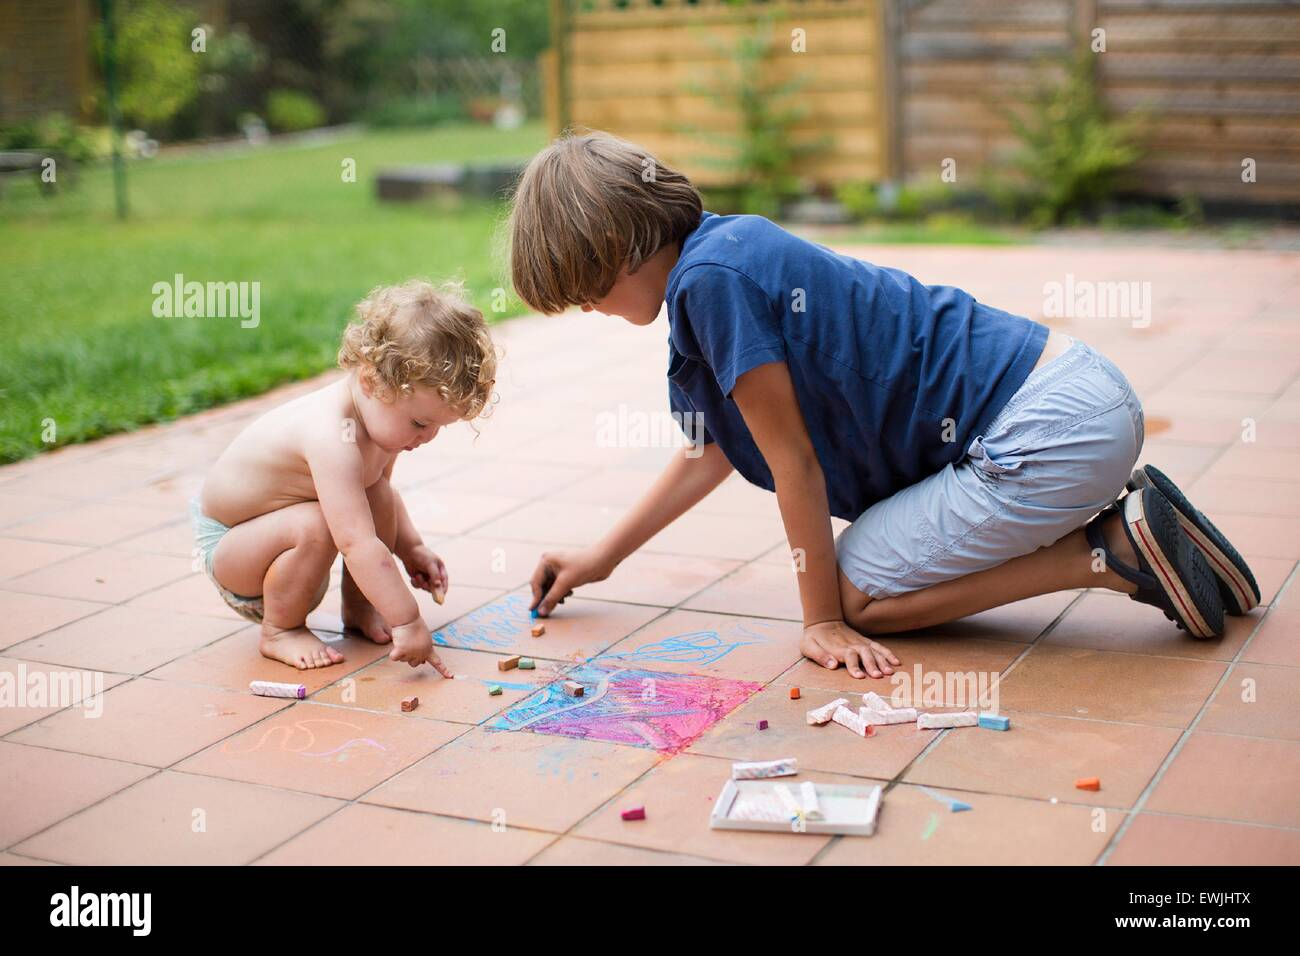 Brother and his baby sister playing together in the backyard painting with colorful chalk - Stock Image